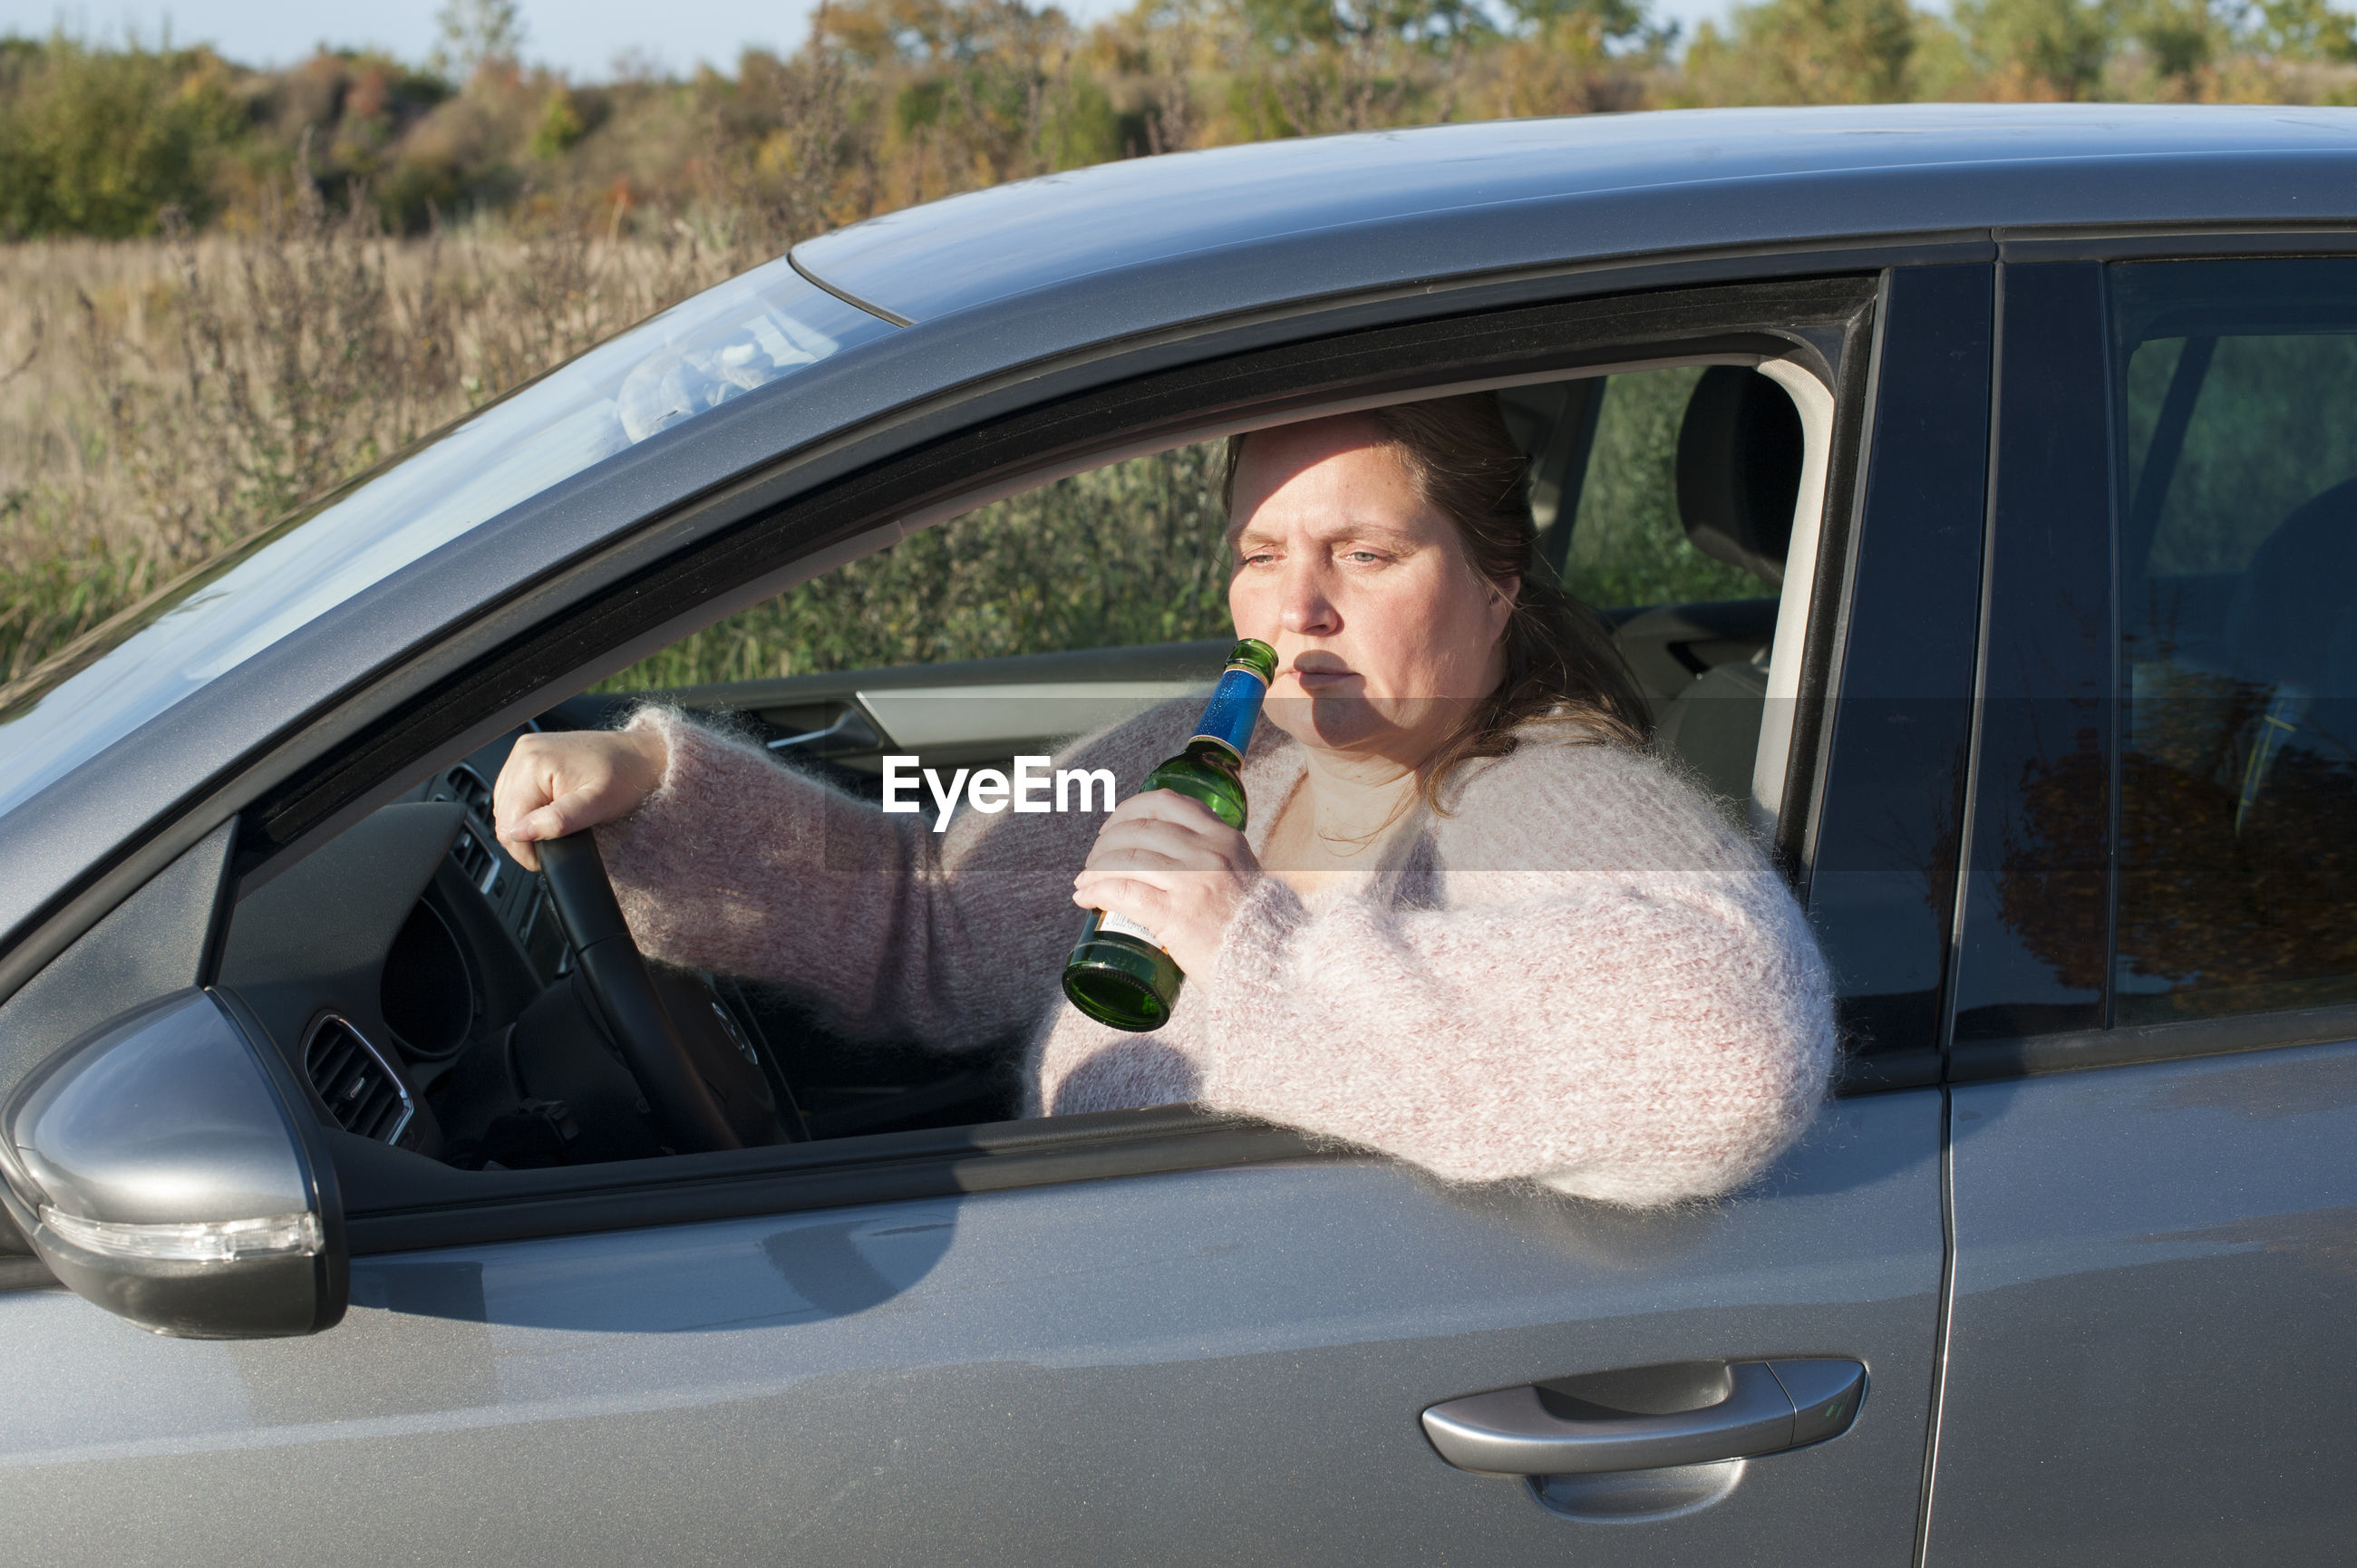 Woman drinking beer from bottle while sitting in car